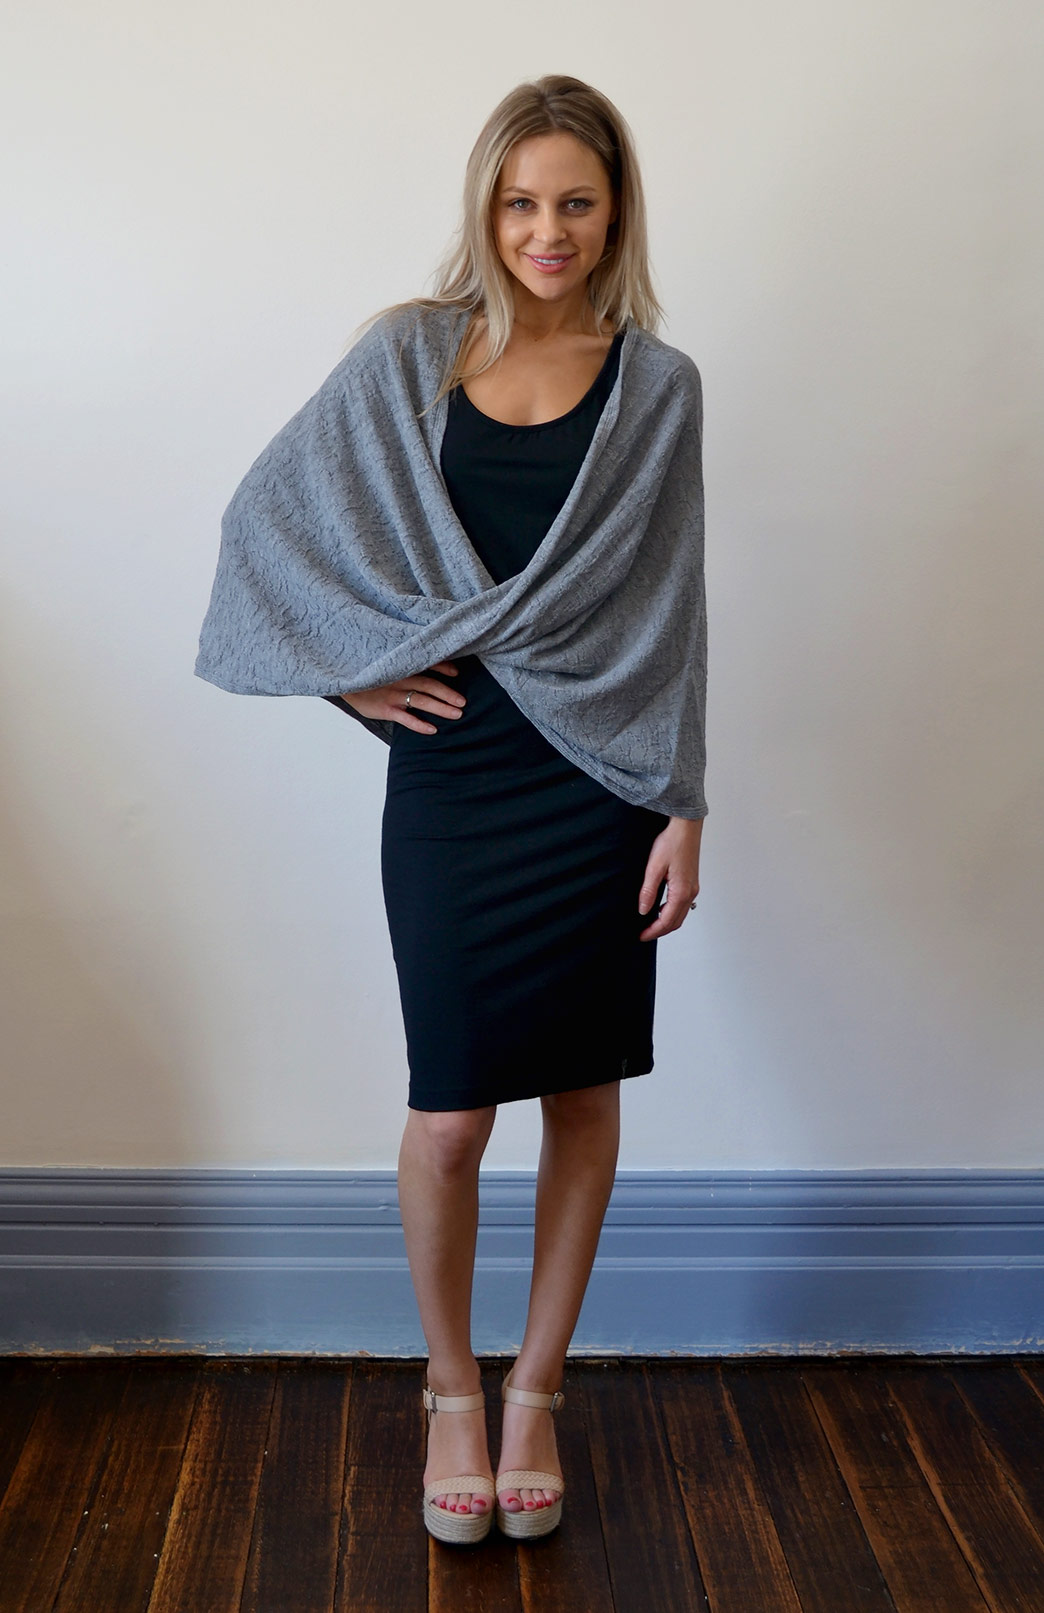 Merino Twisted Wrap - Women's Merino Wool Grey Twisted Wrap and Classic Shrug - Smitten Merino Tasmania Australia